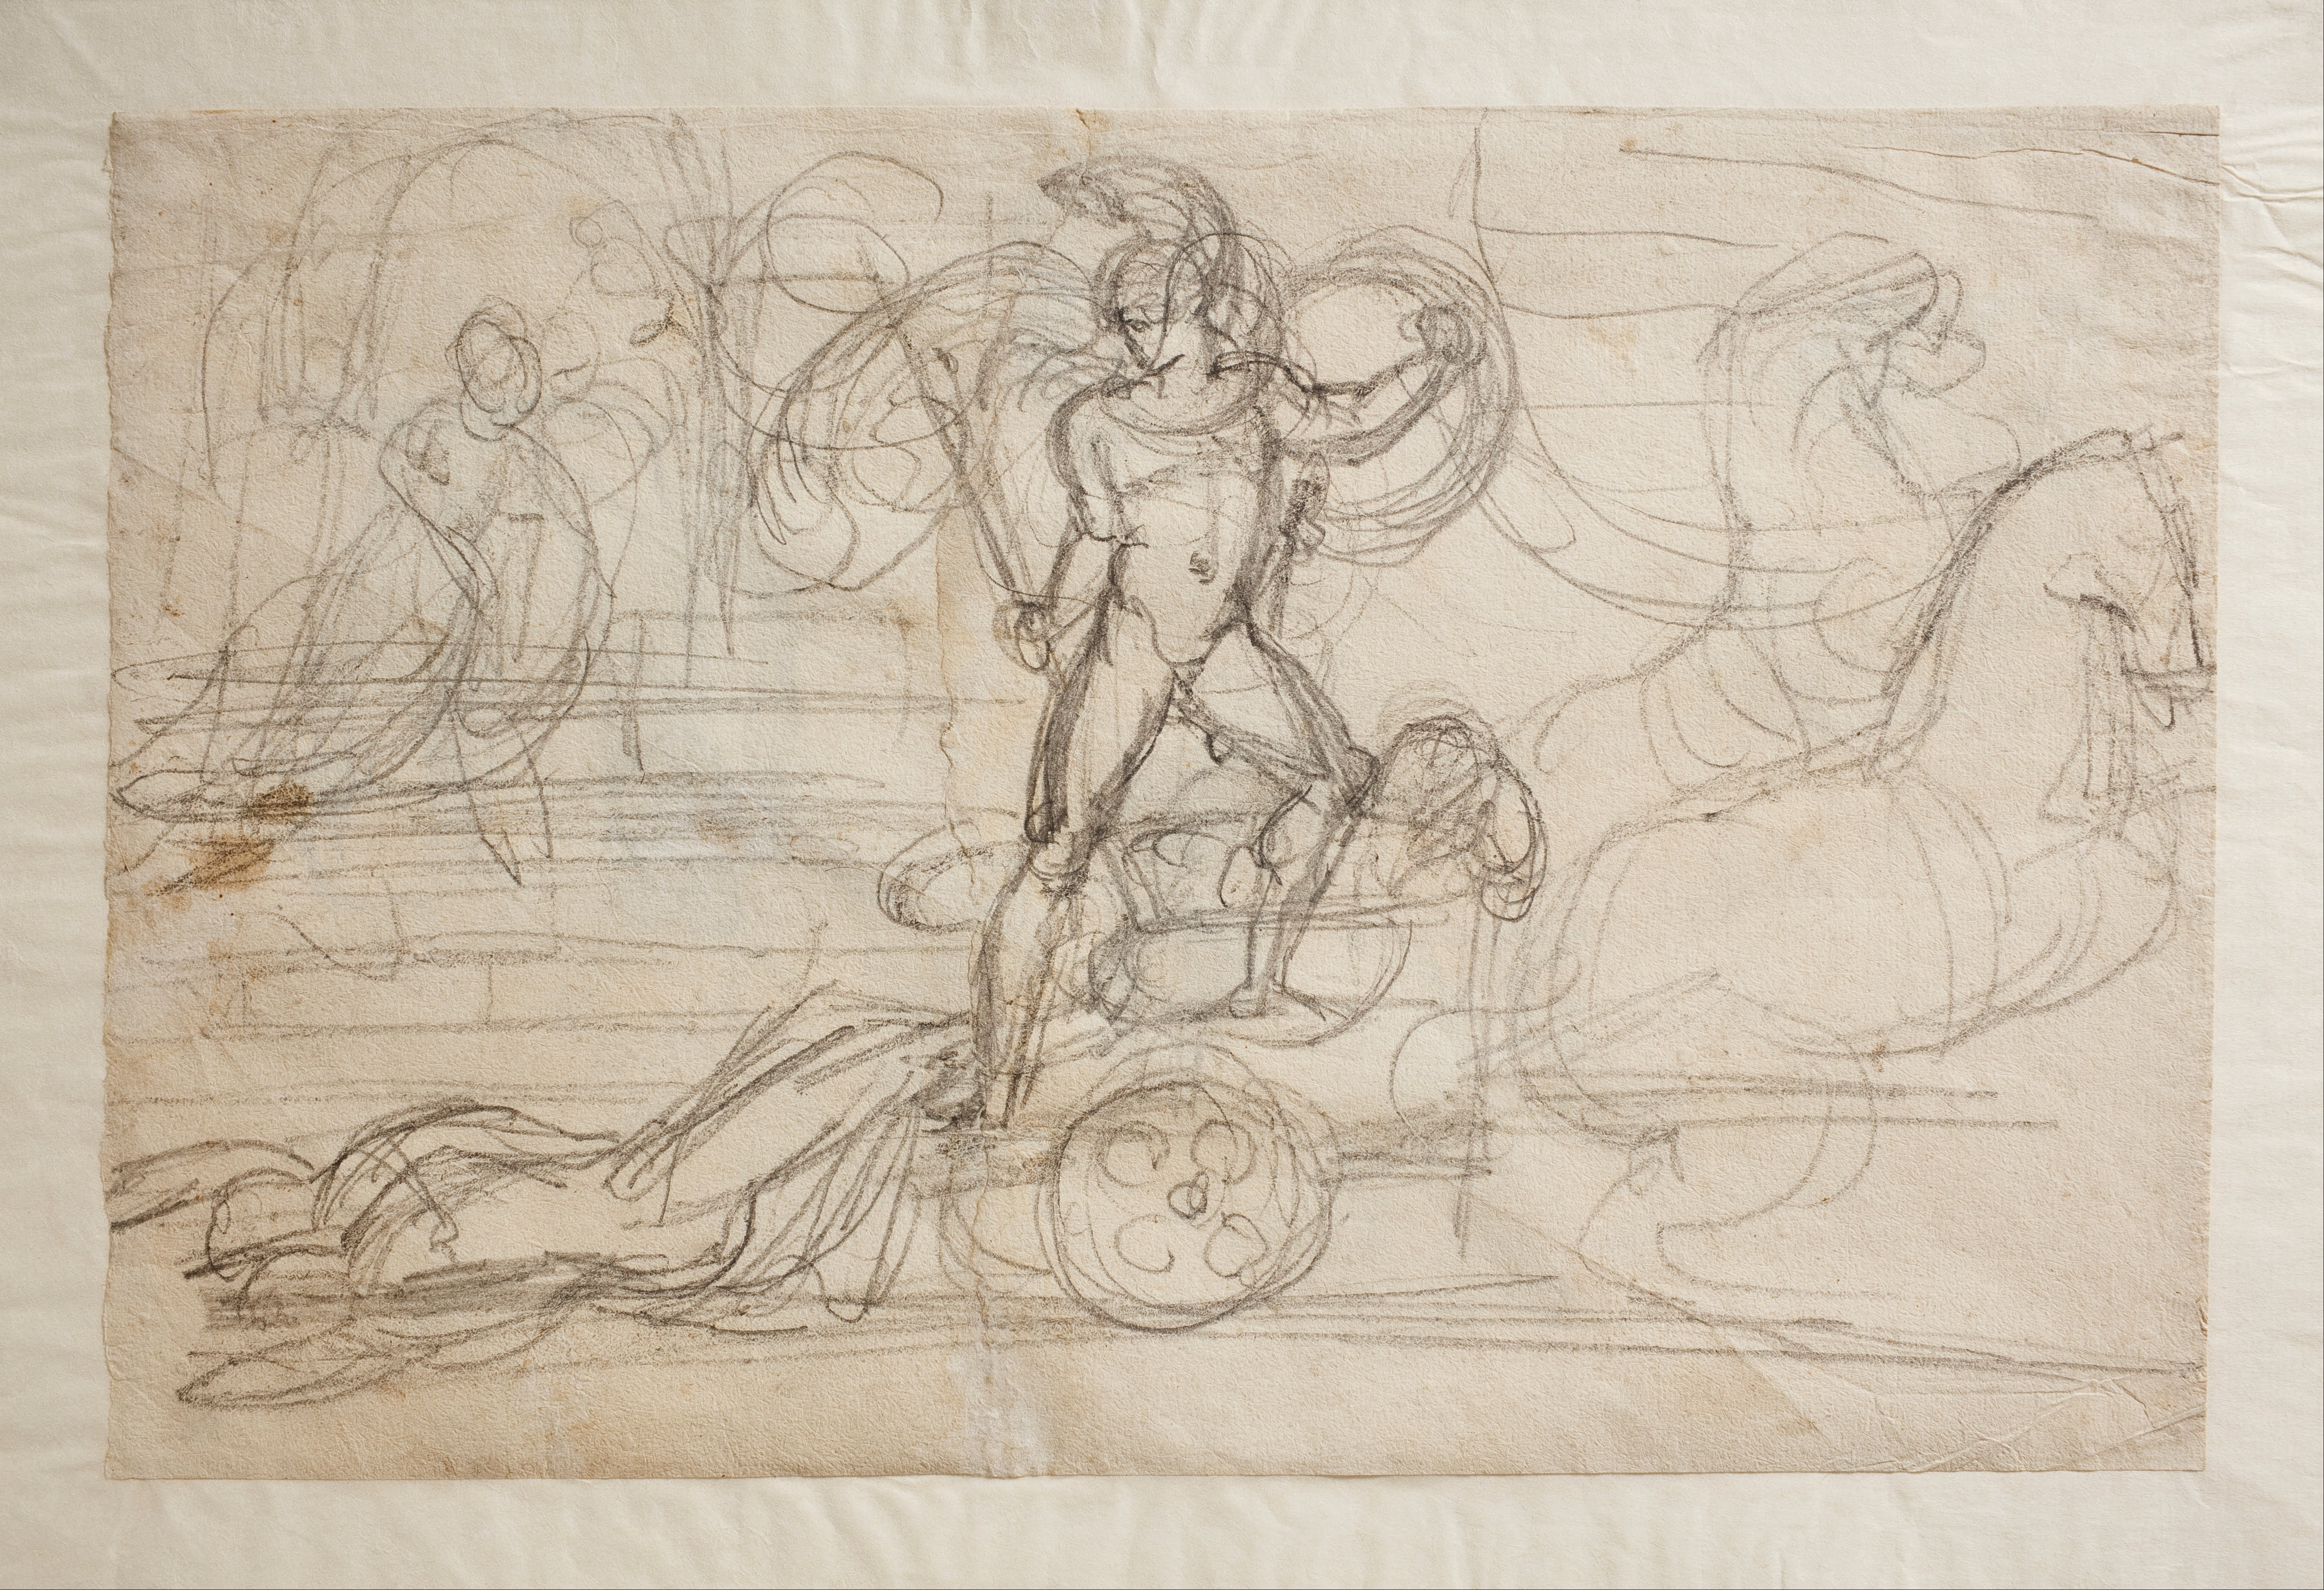 File:Bertel Thorvaldsen - Achilles Trails Hector's Body